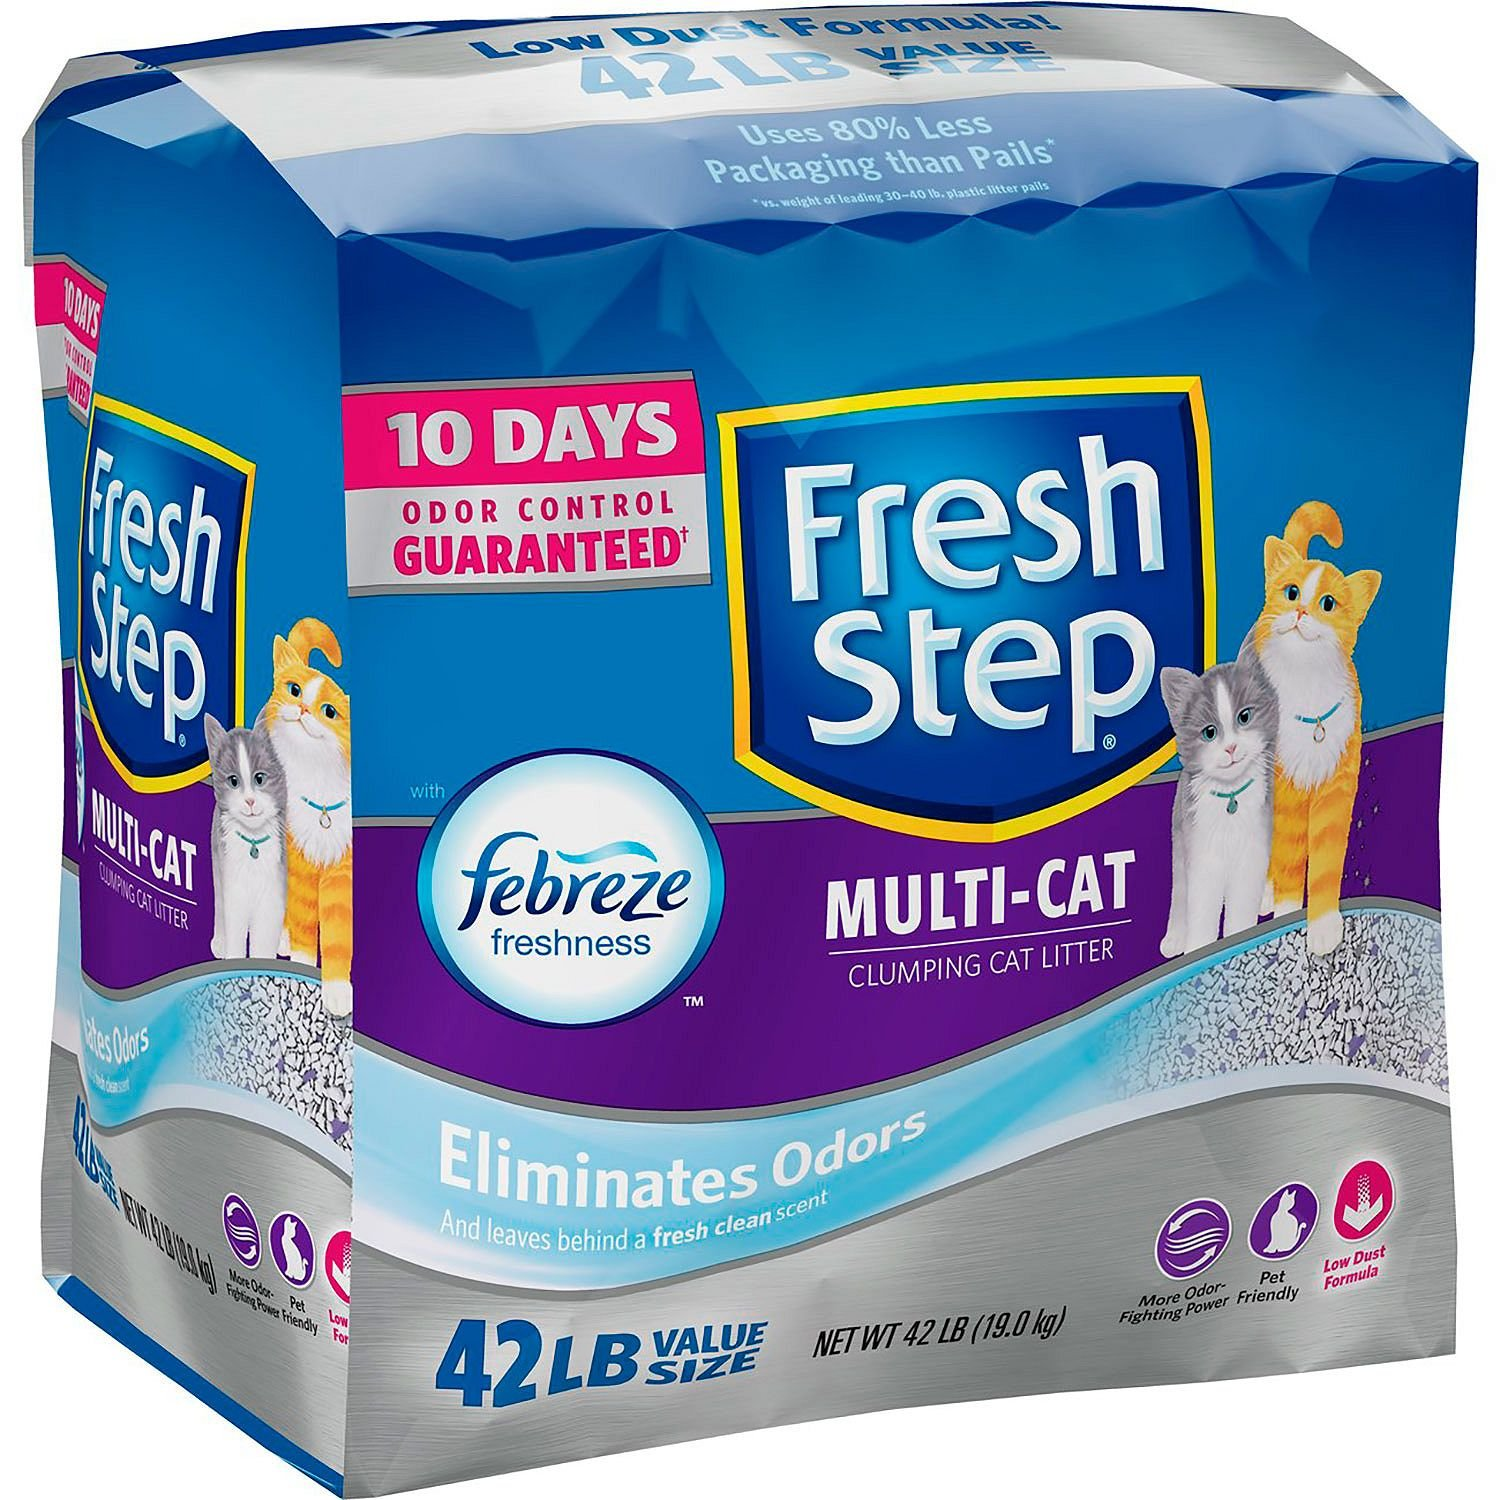 Fresh Step Multi-Cat with Febreze Clumping Cat Litter (42 lbs.) - 6 PACK